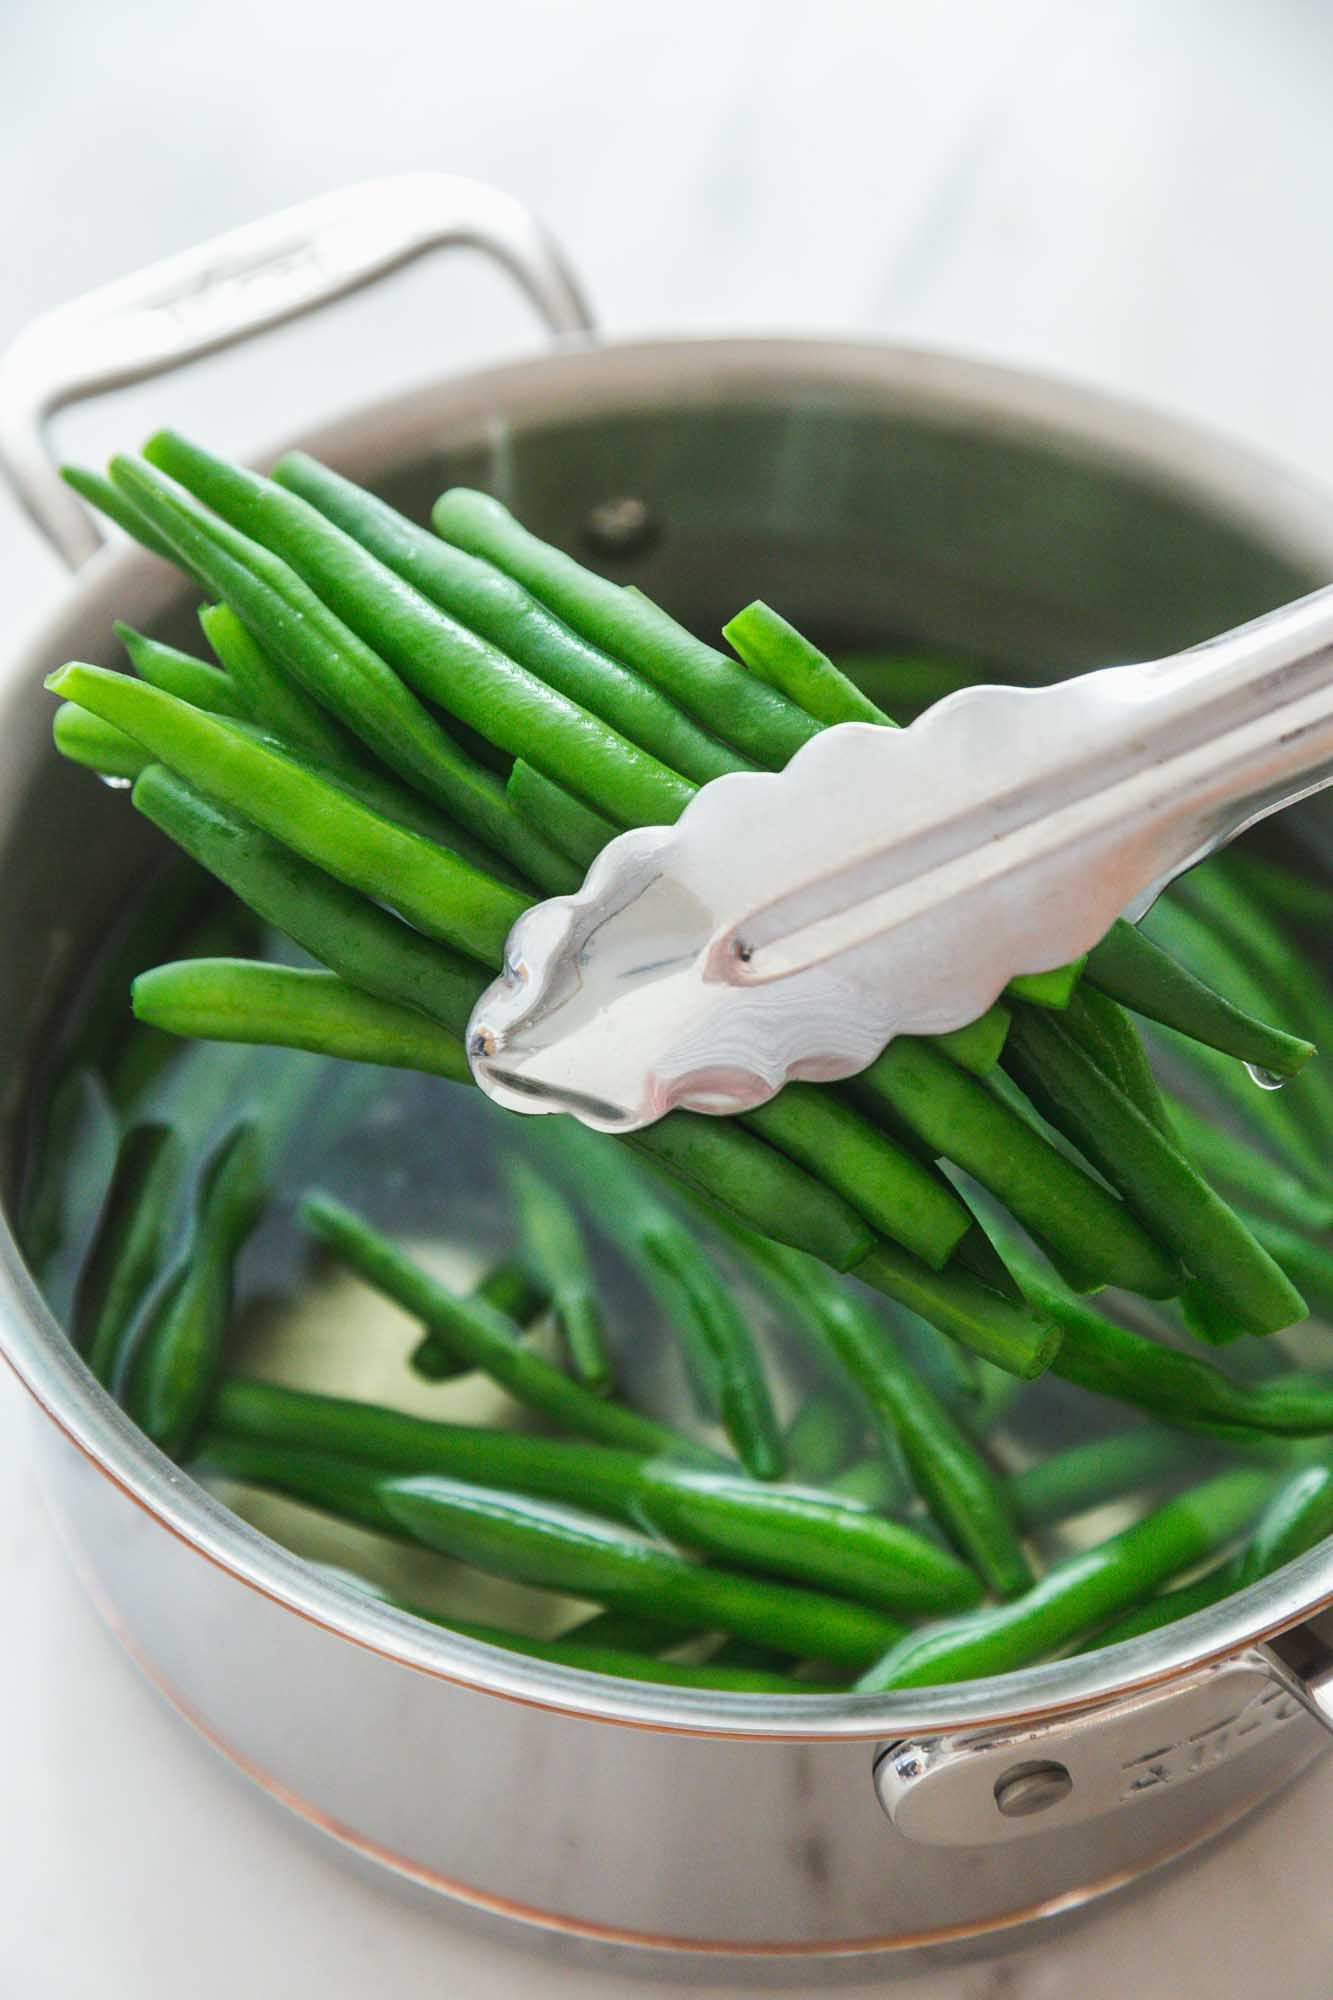 Taking blanched green beans with tongs from a saucepan